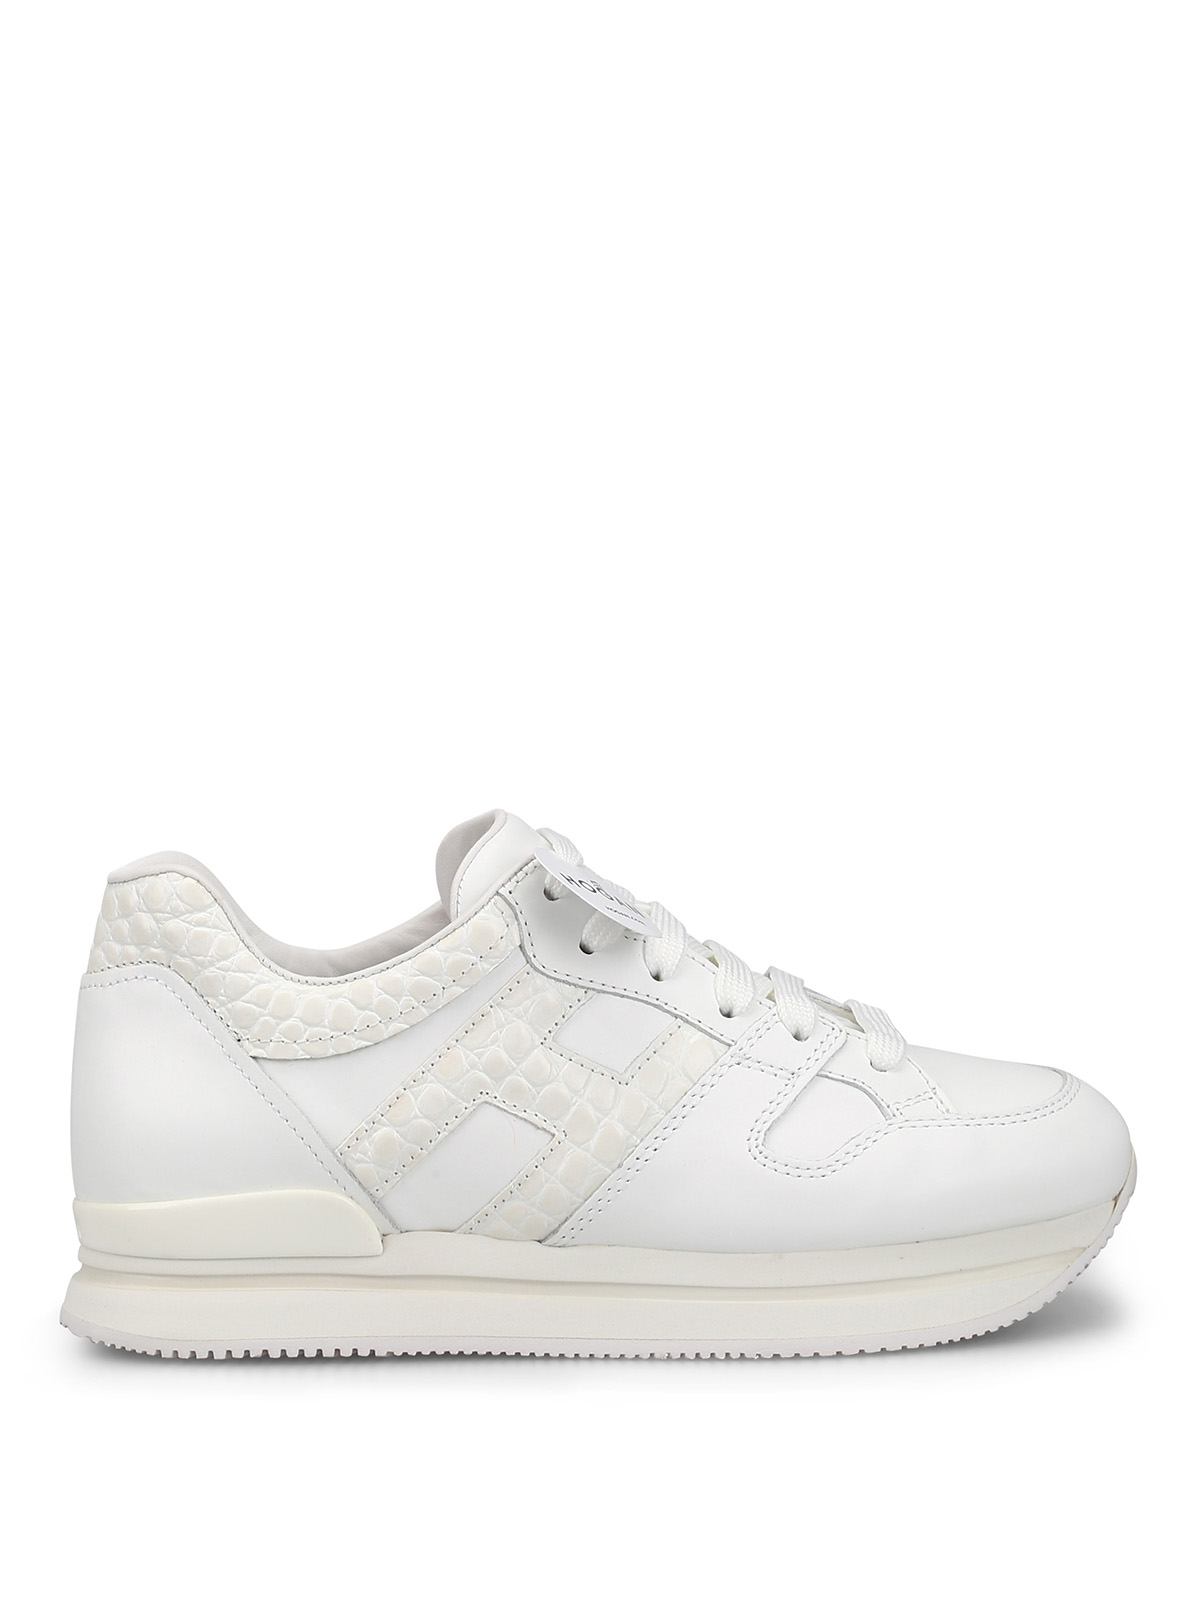 Hogan H222 White Leather Sneakers